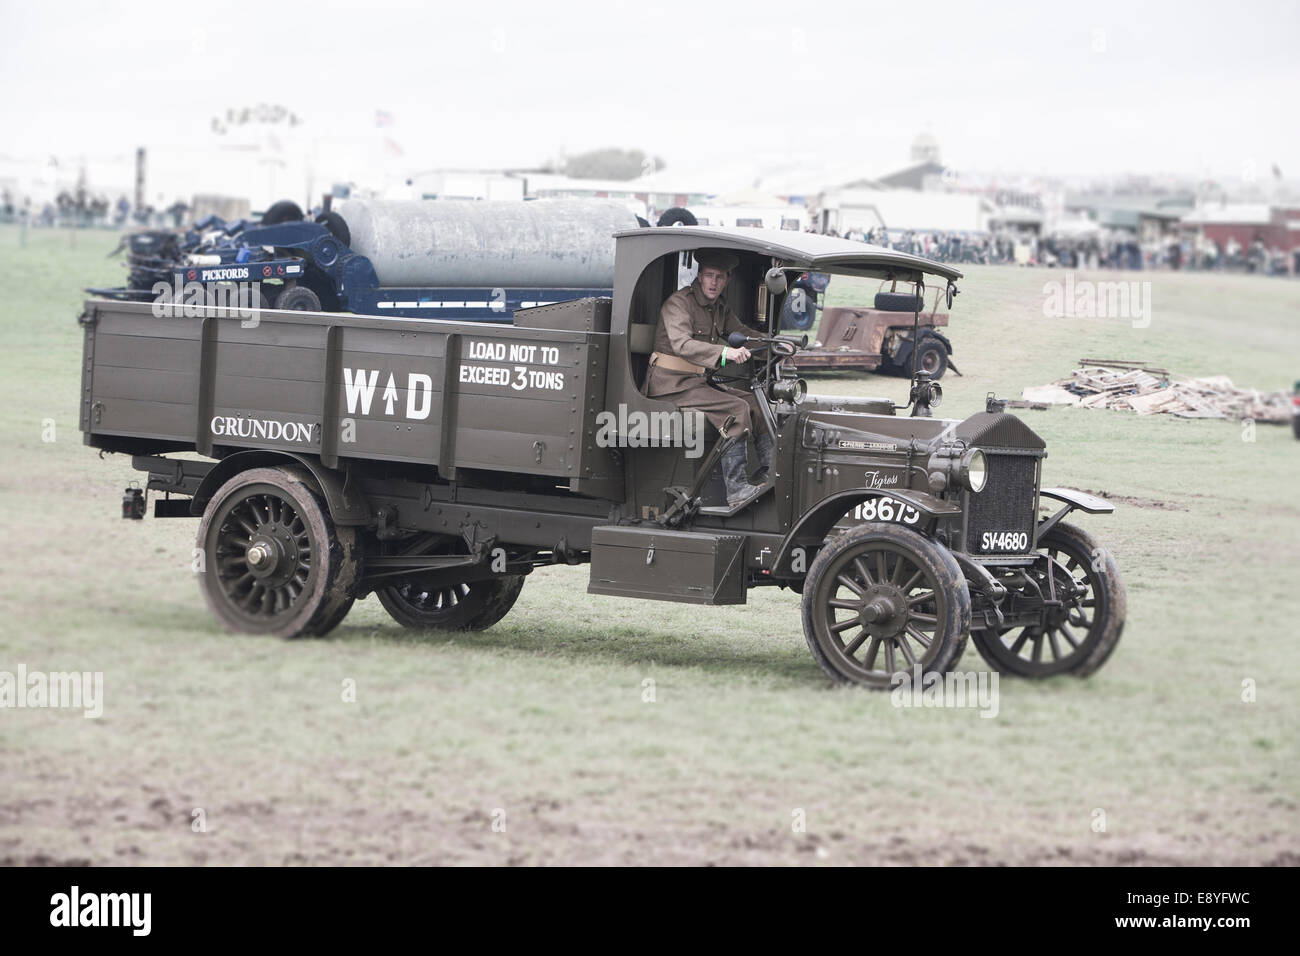 A WW1 1916 Thornycroft War Department (WD) lorry being driven by a British Army soldier in period uniform. - Stock Image